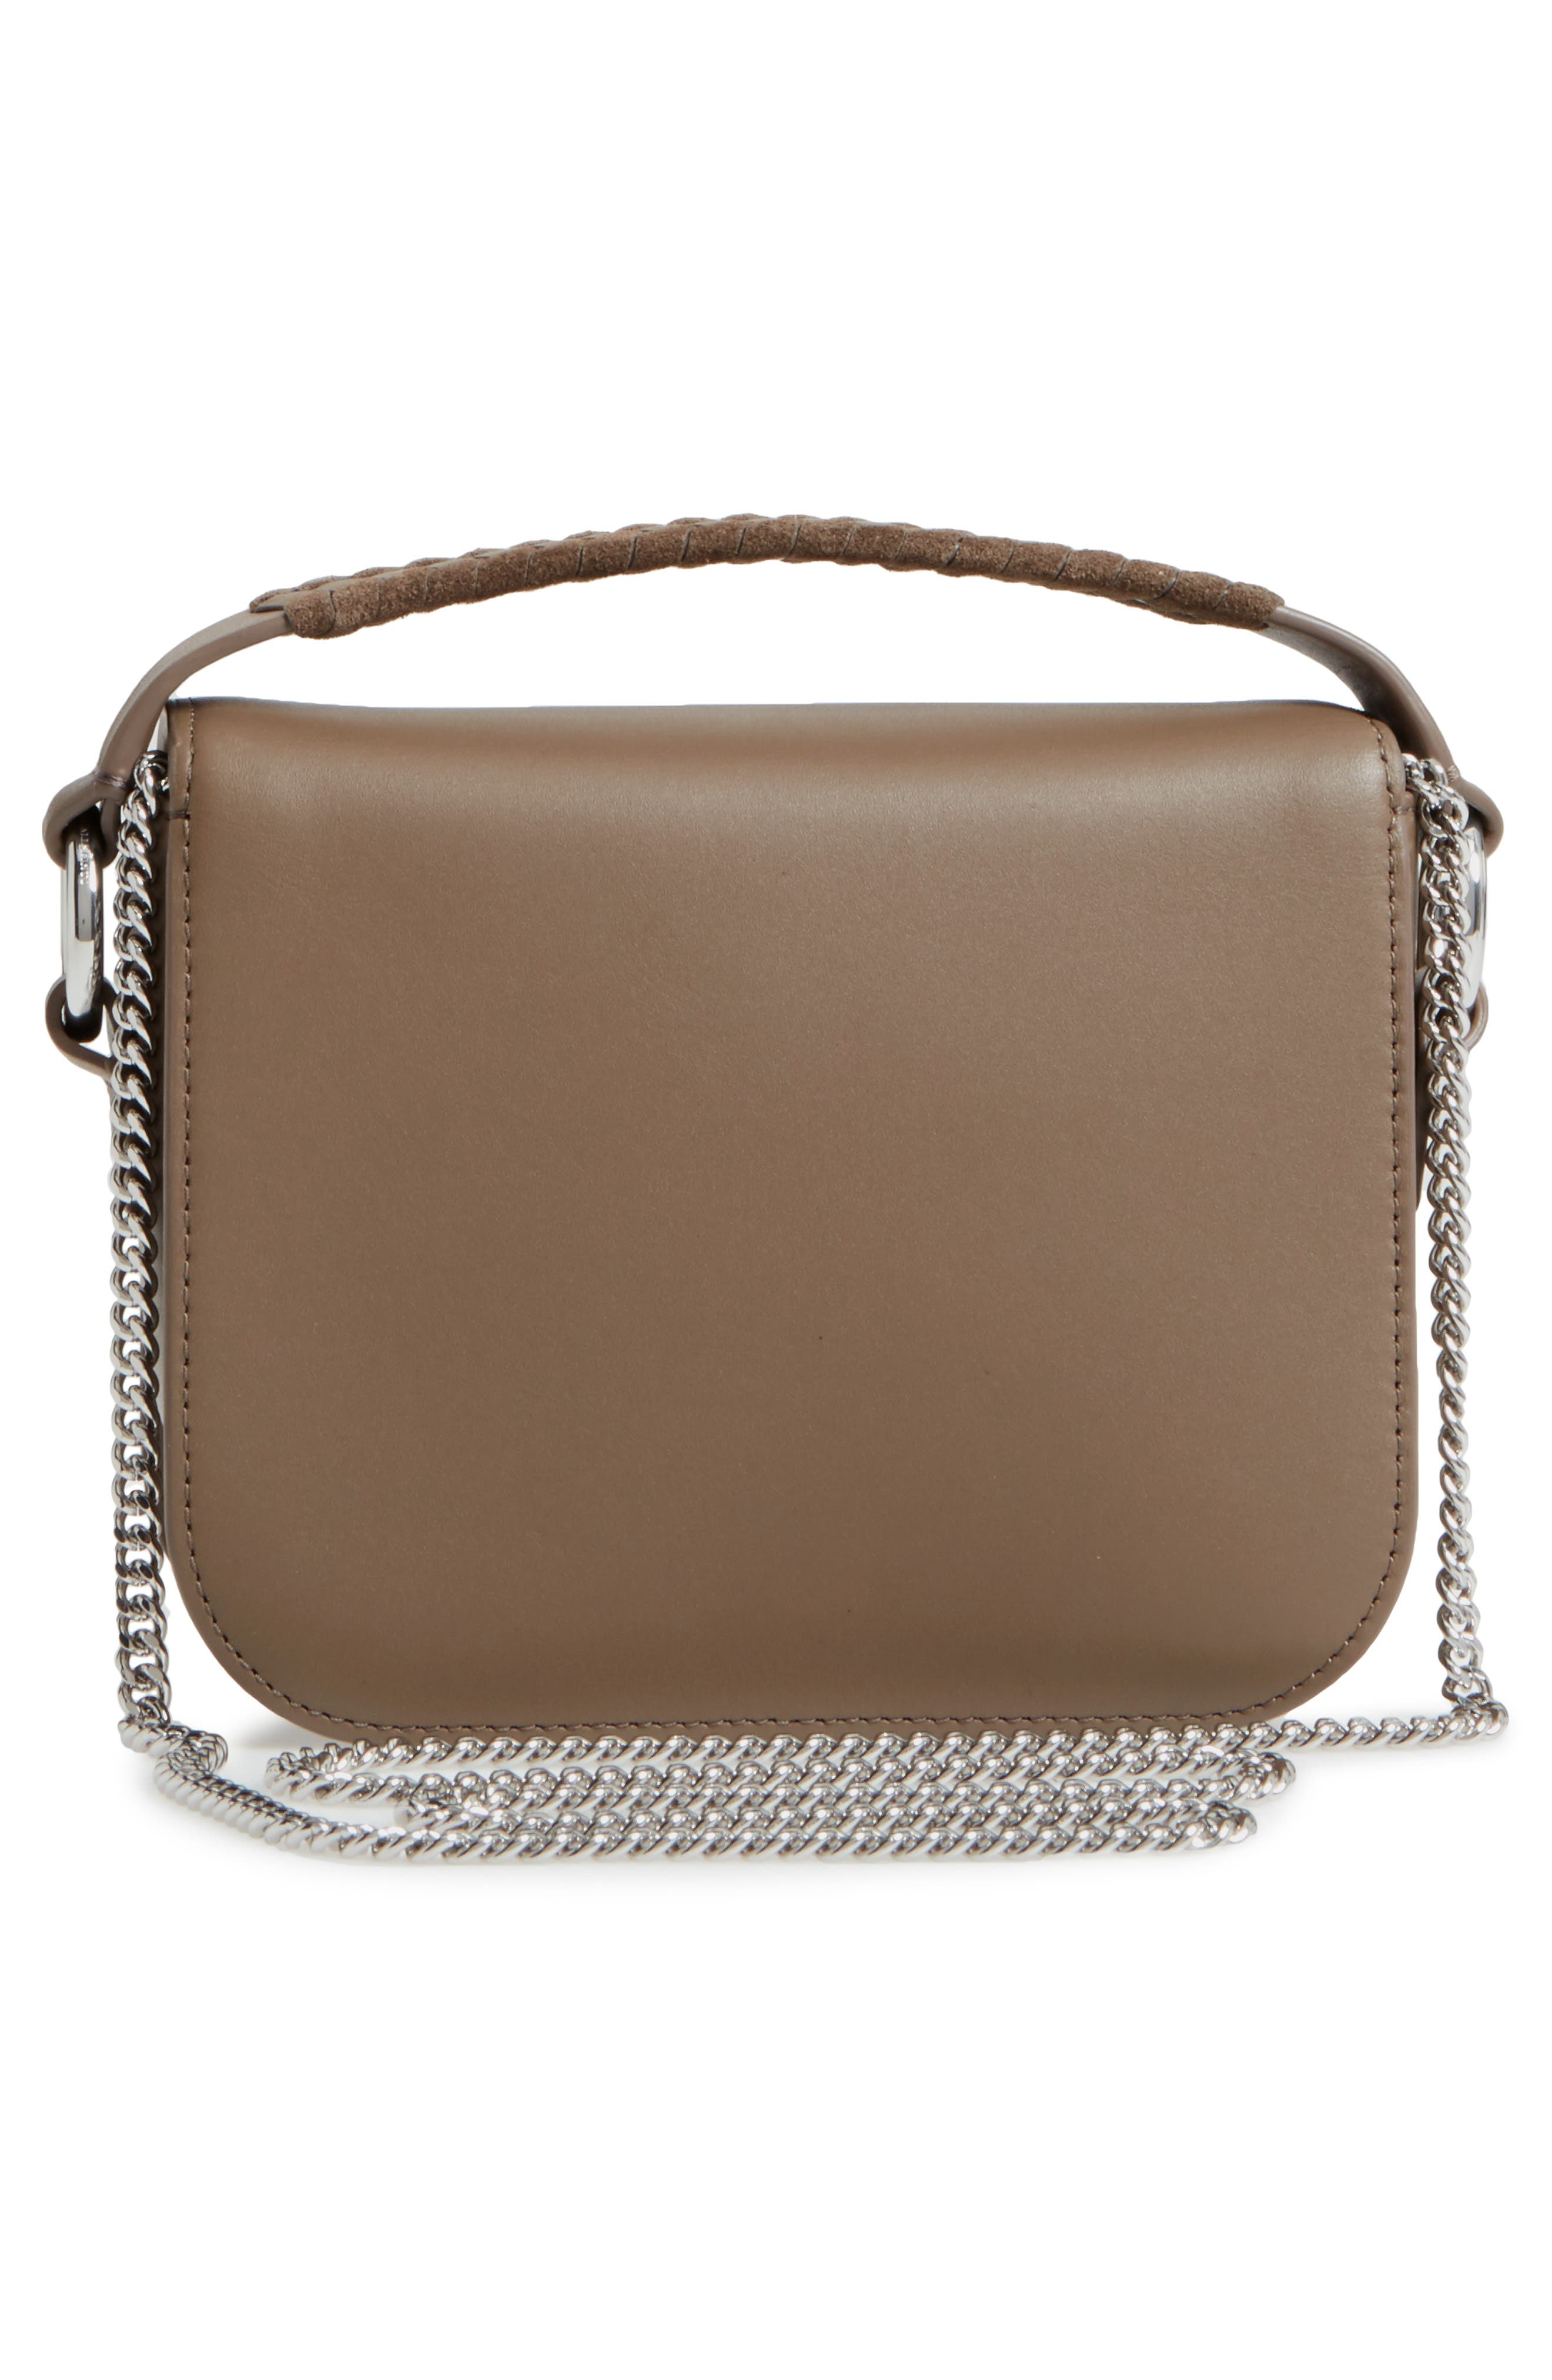 Ray Leather Clutch,                             Alternate thumbnail 3, color,                             200